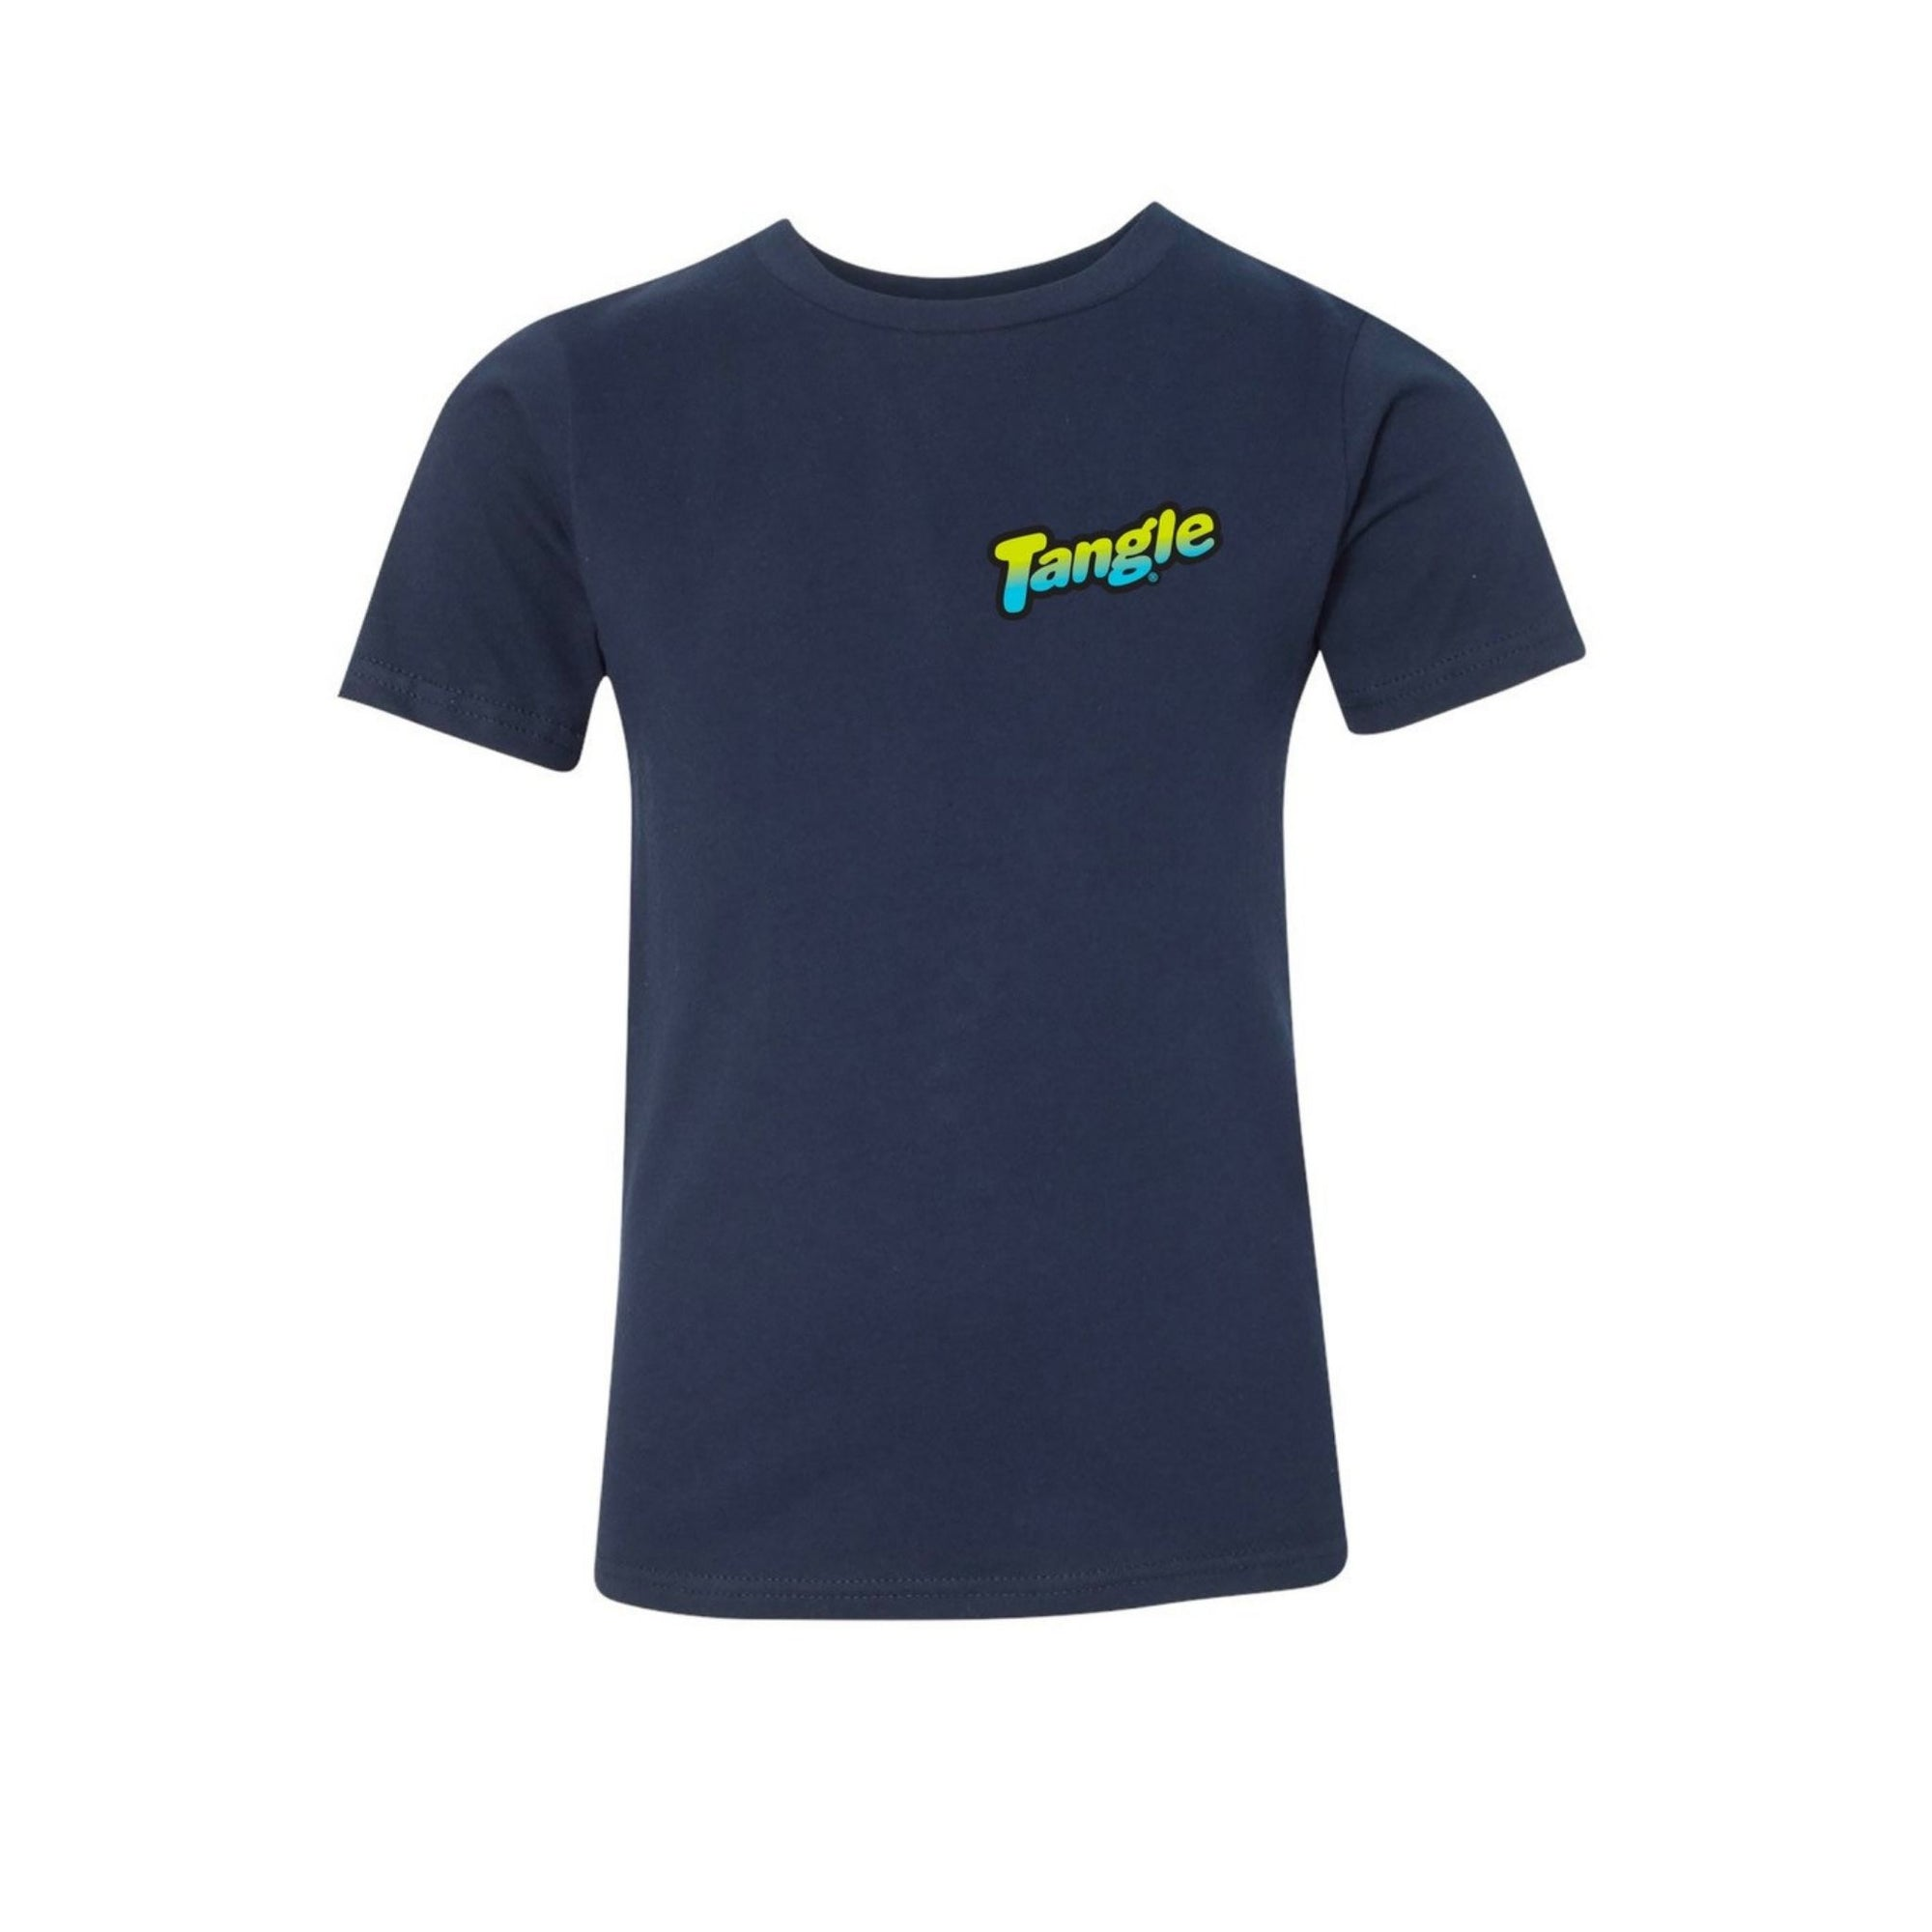 Official Tangle T-Shirt (Youth Size)